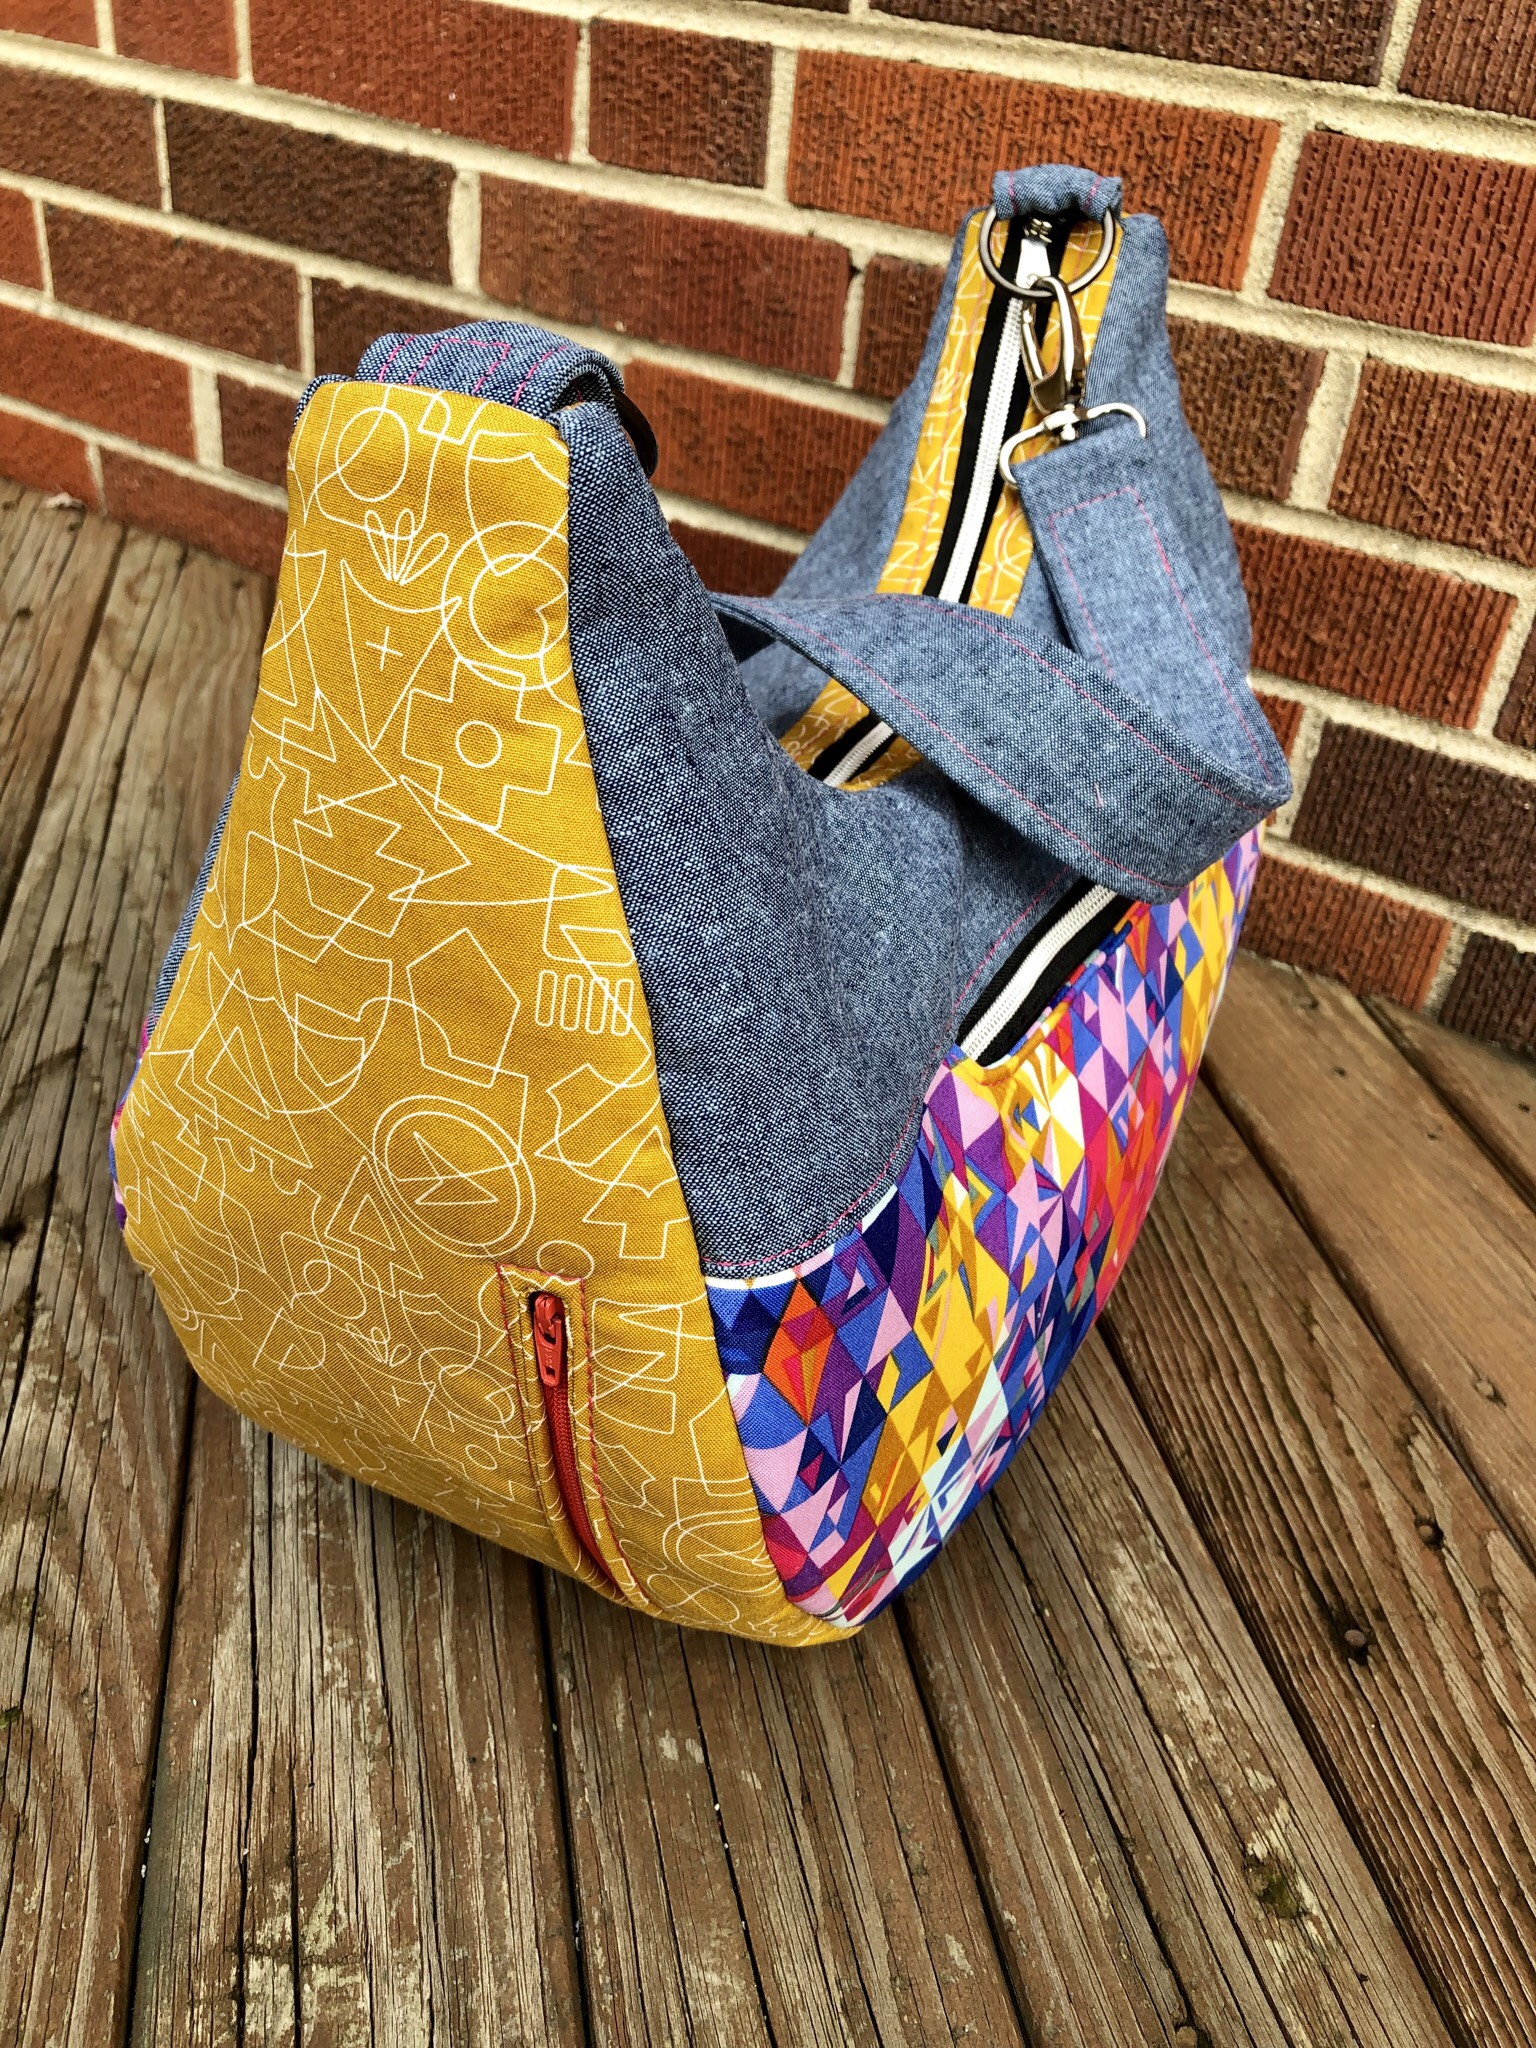 Honeysuckle Hobo Bag - January 2019 – Carried Away Pattern Collective #bagpatterns